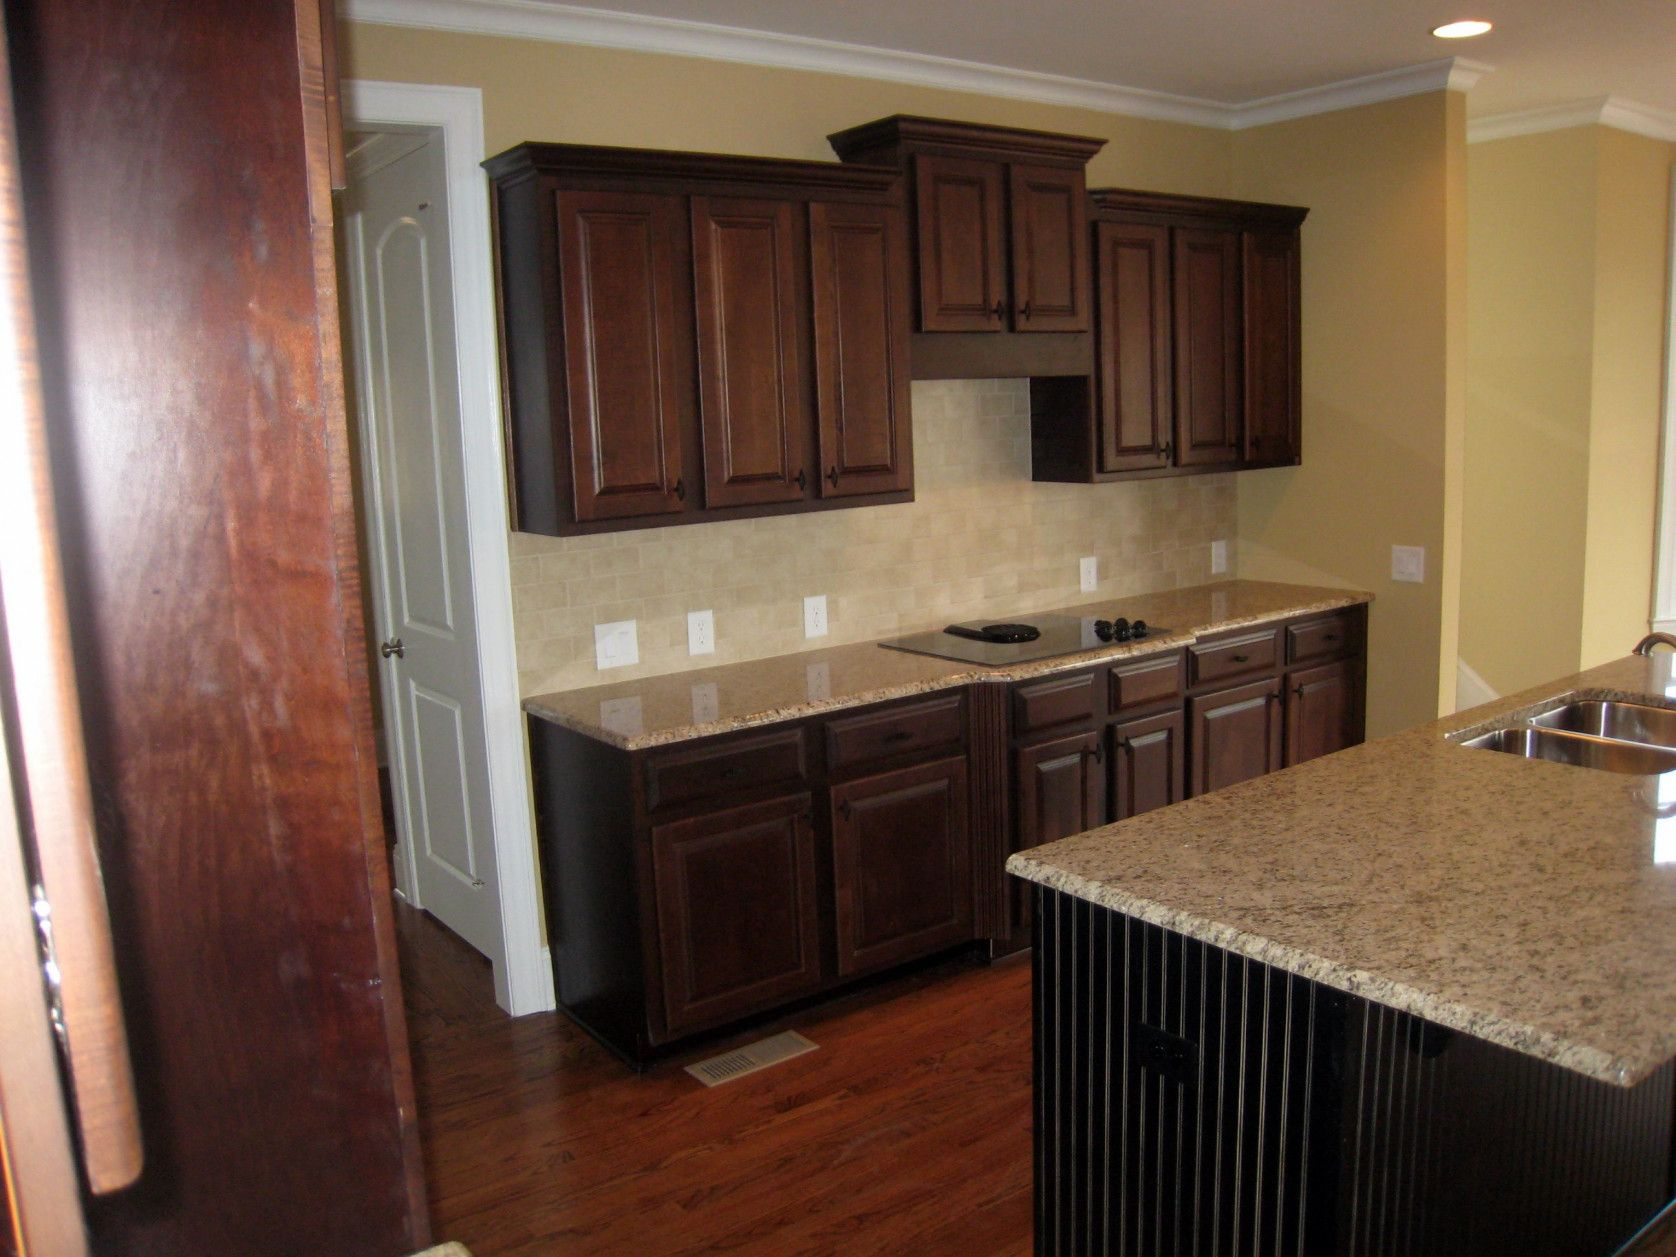 O 99 Discount Kitchen Cabinets Portland Oregon  Cabinet Lighting  Ideas Check More At Http